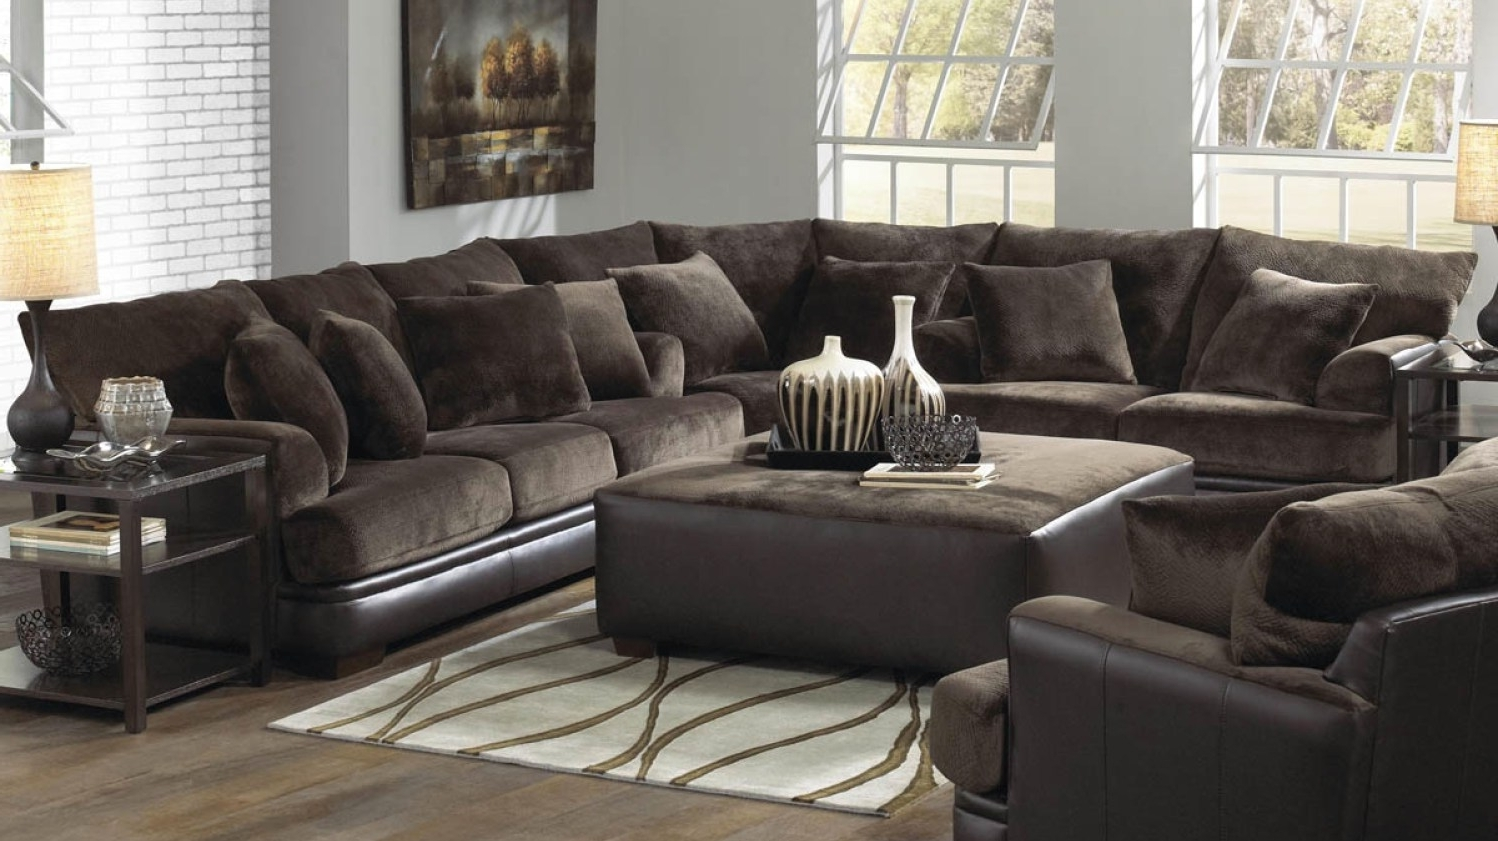 Canterbury Leather Sofas Throughout Popular Sofa : Wonderful Canterbury Leather Sofas Ellie Leather Sofa Range (View 11 of 20)